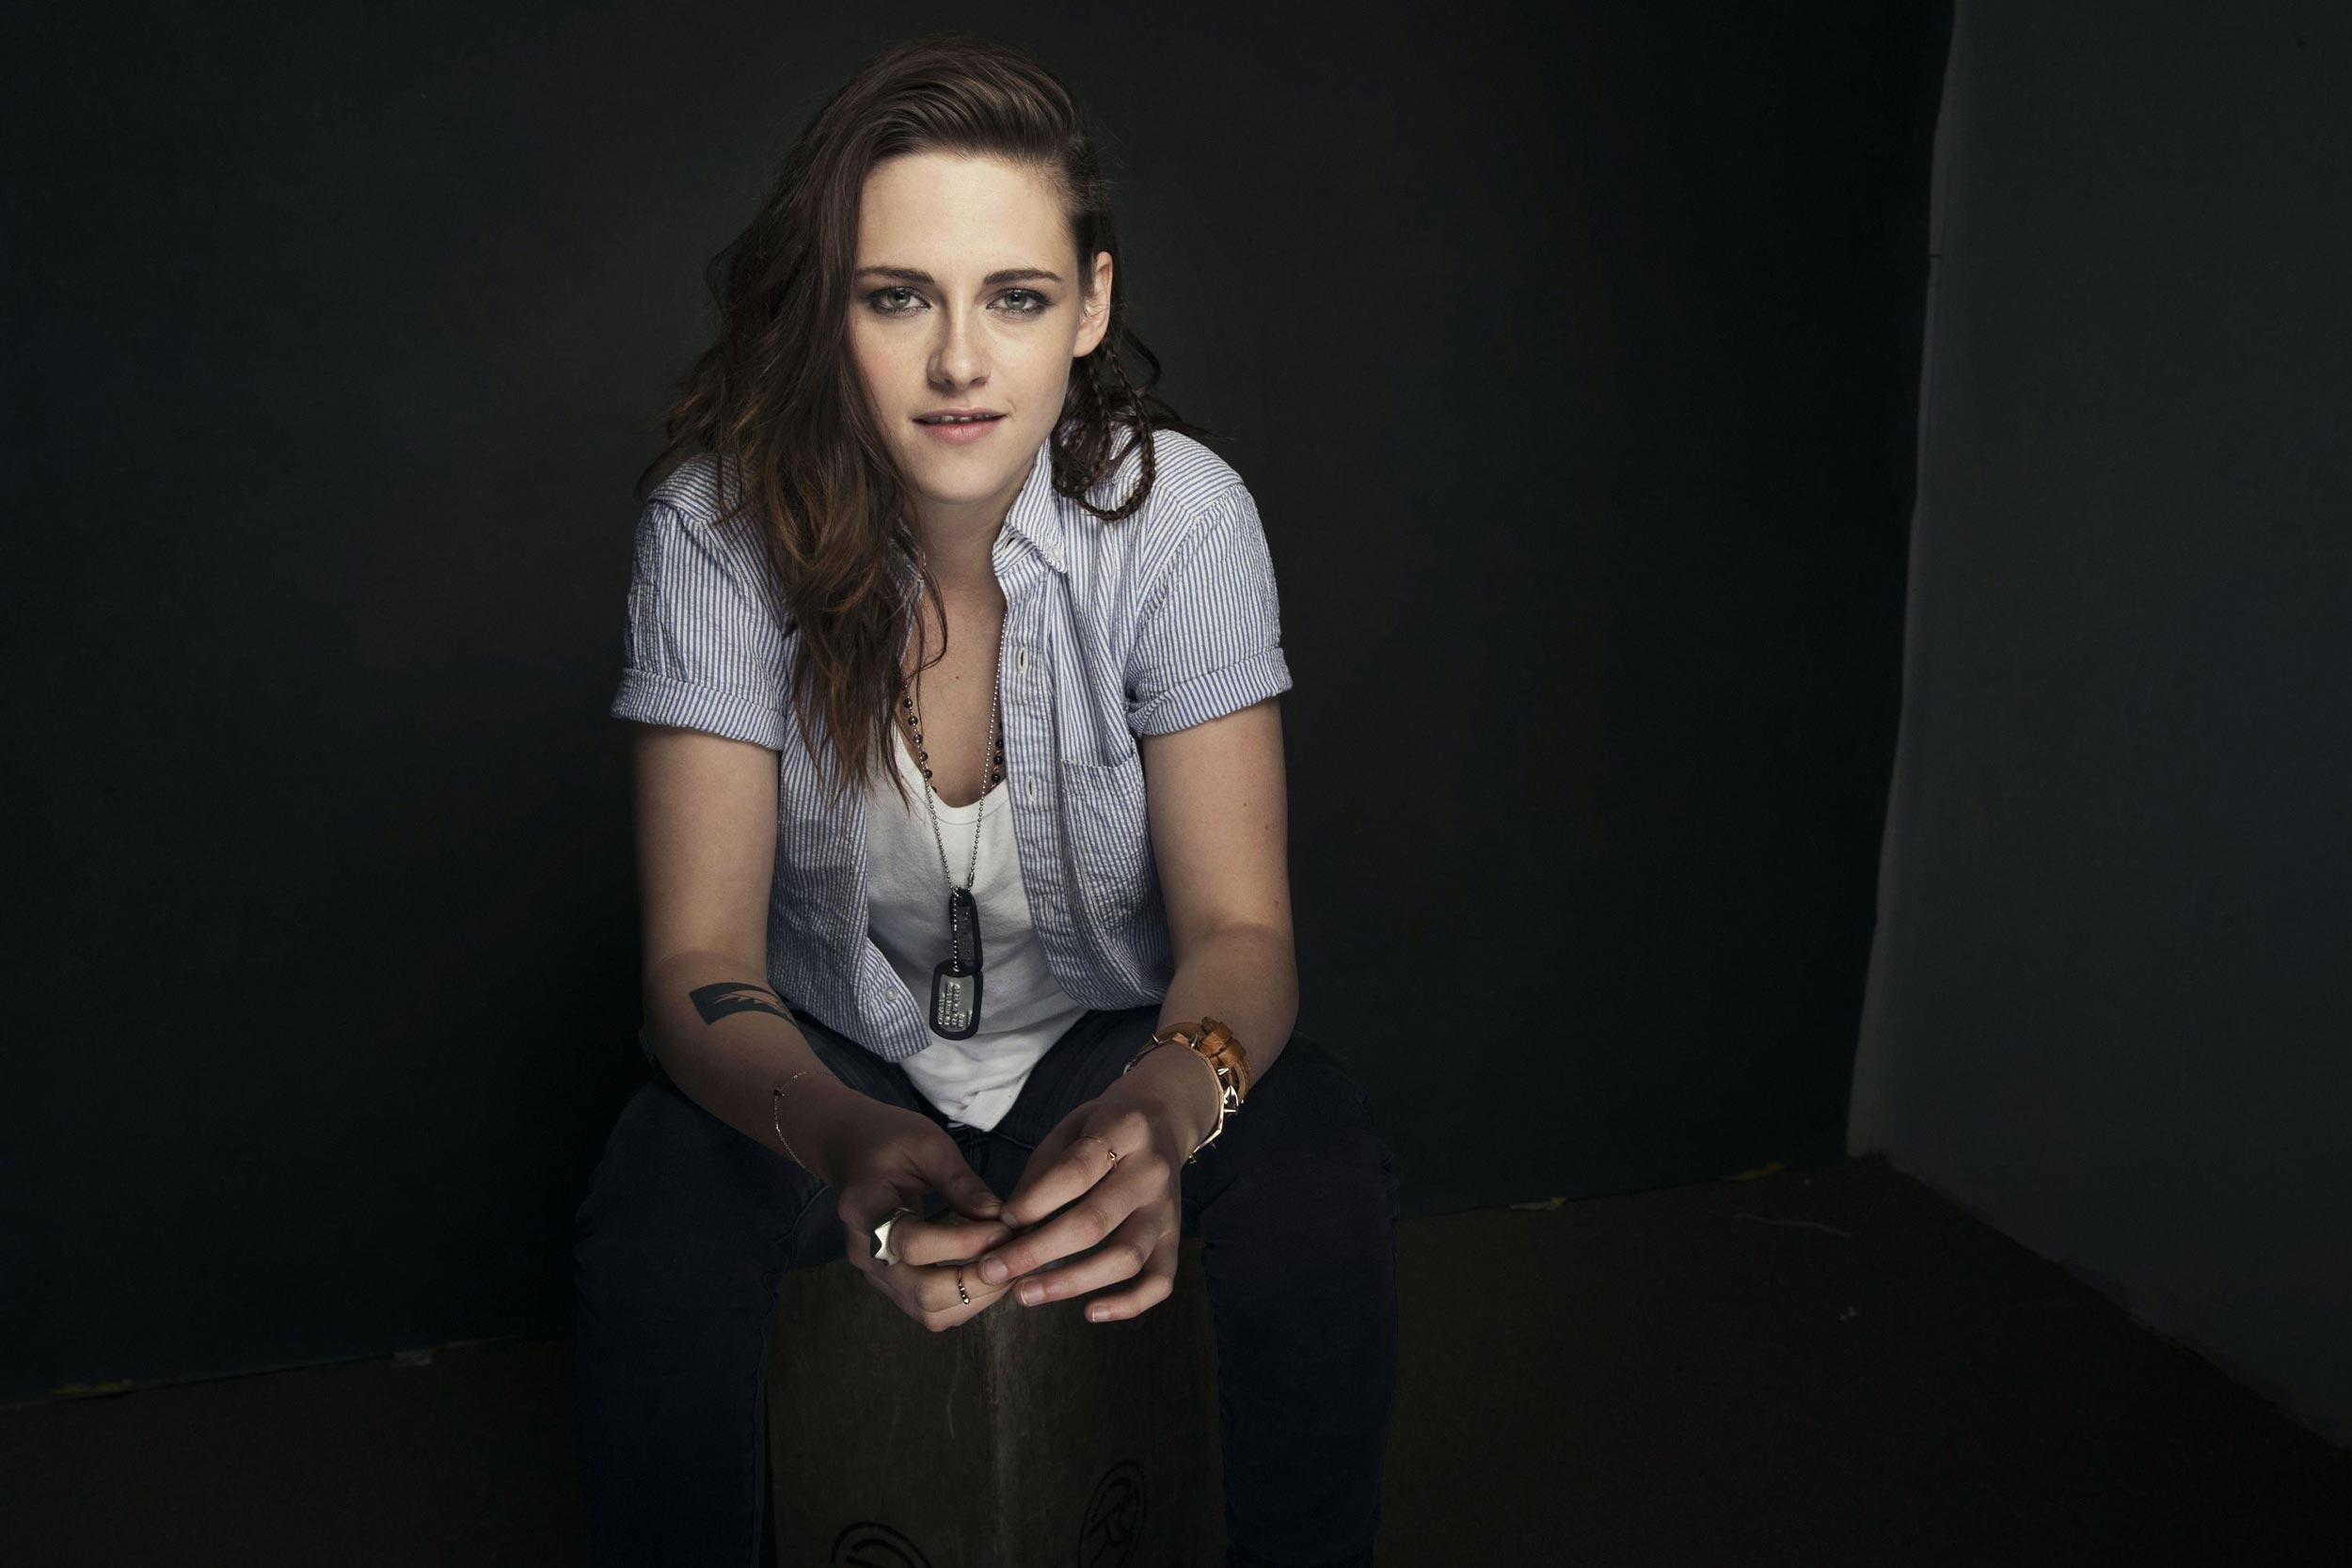 Kristen Stewart Portrait Photos 2014 Sundance Film